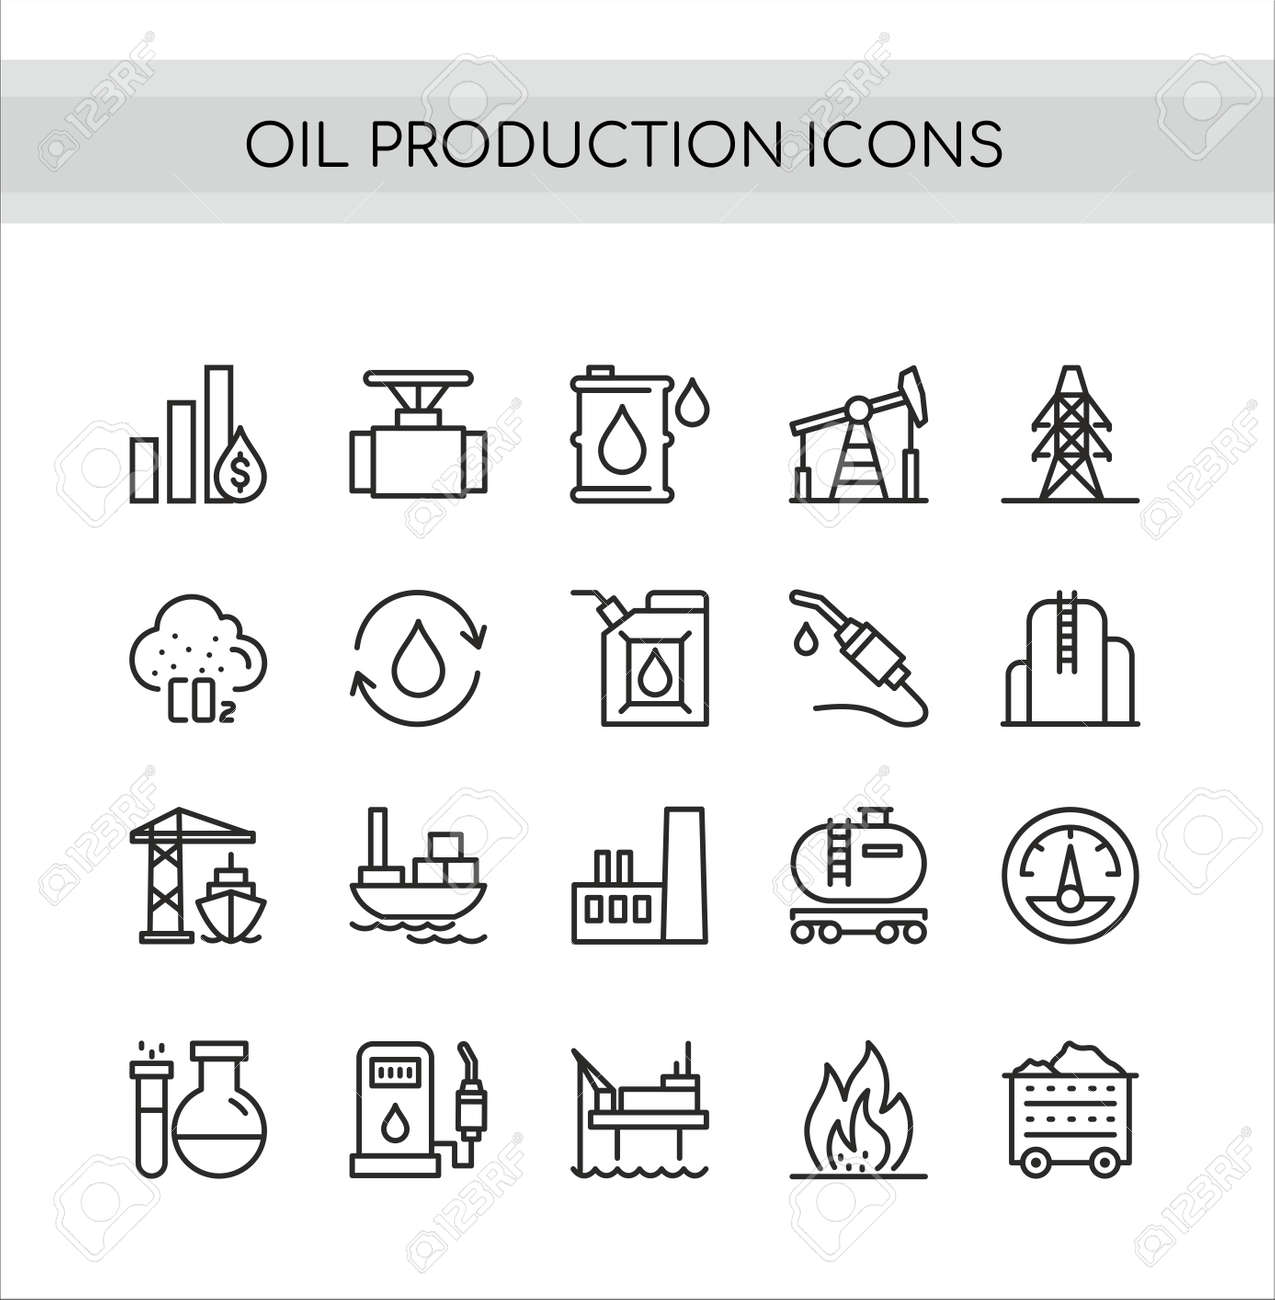 Oil production vector illustration set. Flat thin line icons collection of extraction in oilfield drilling pump station, tanker ship or truck transportation, pollution and refinery oil plant symbols - 151954139